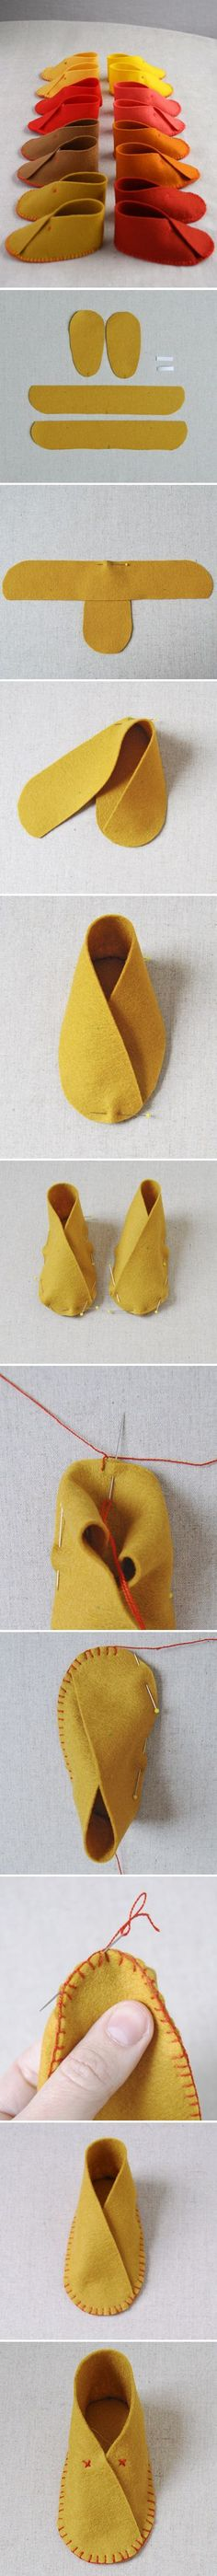 Felt Baby Shoes #DIY #baby #crafts